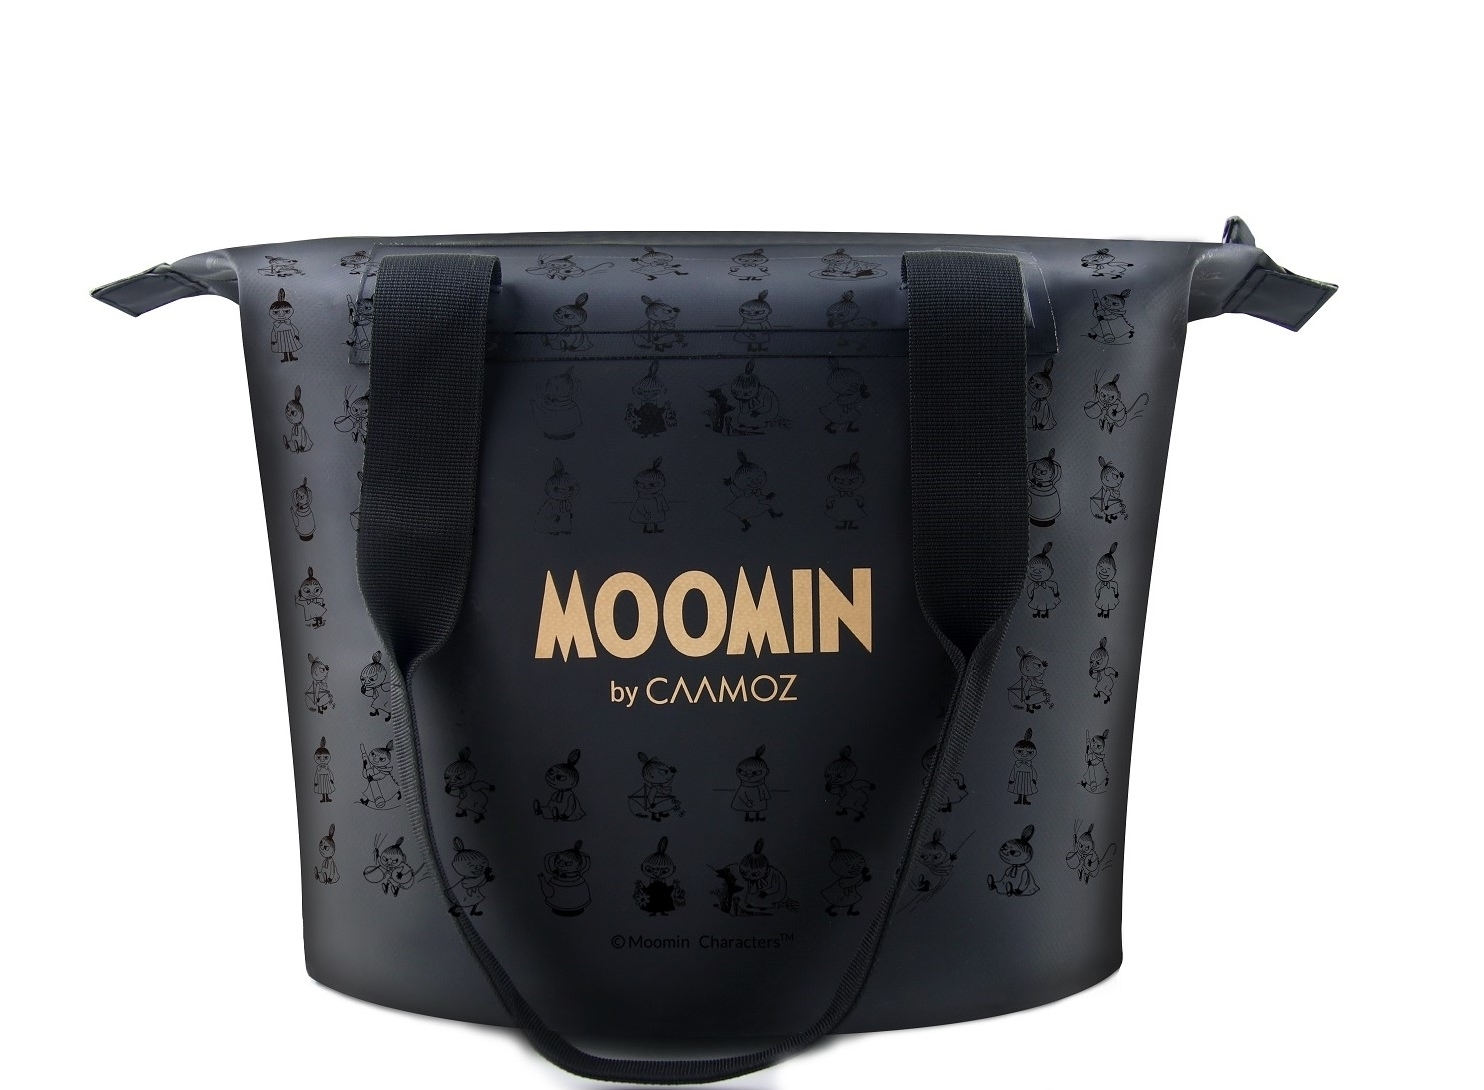 Moomin Handbags and Shoulderbags - Original Moomin Characters by Caamoz